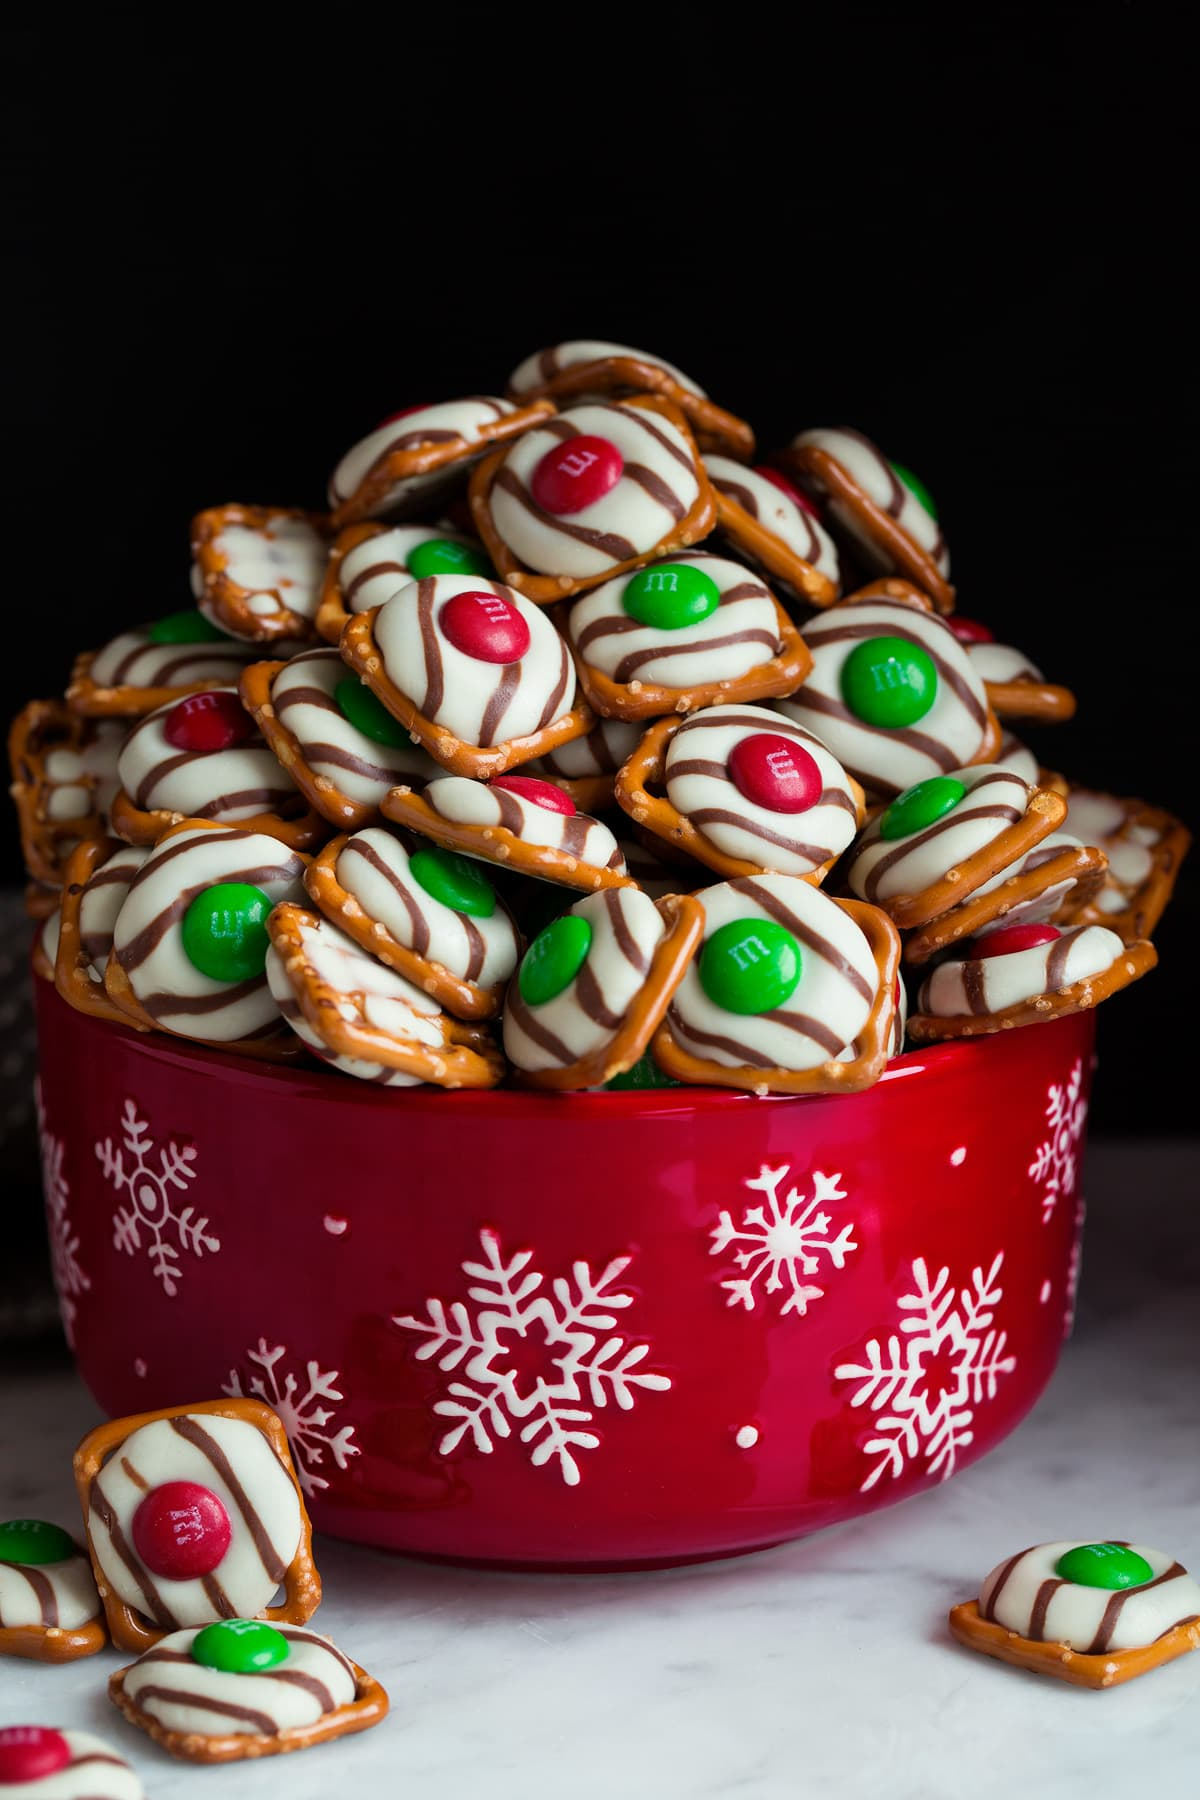 Pretzel M&M Hugs in a red snowflake bowl. The consist of square pretzel base, hug chocolate and red and green M&M's.